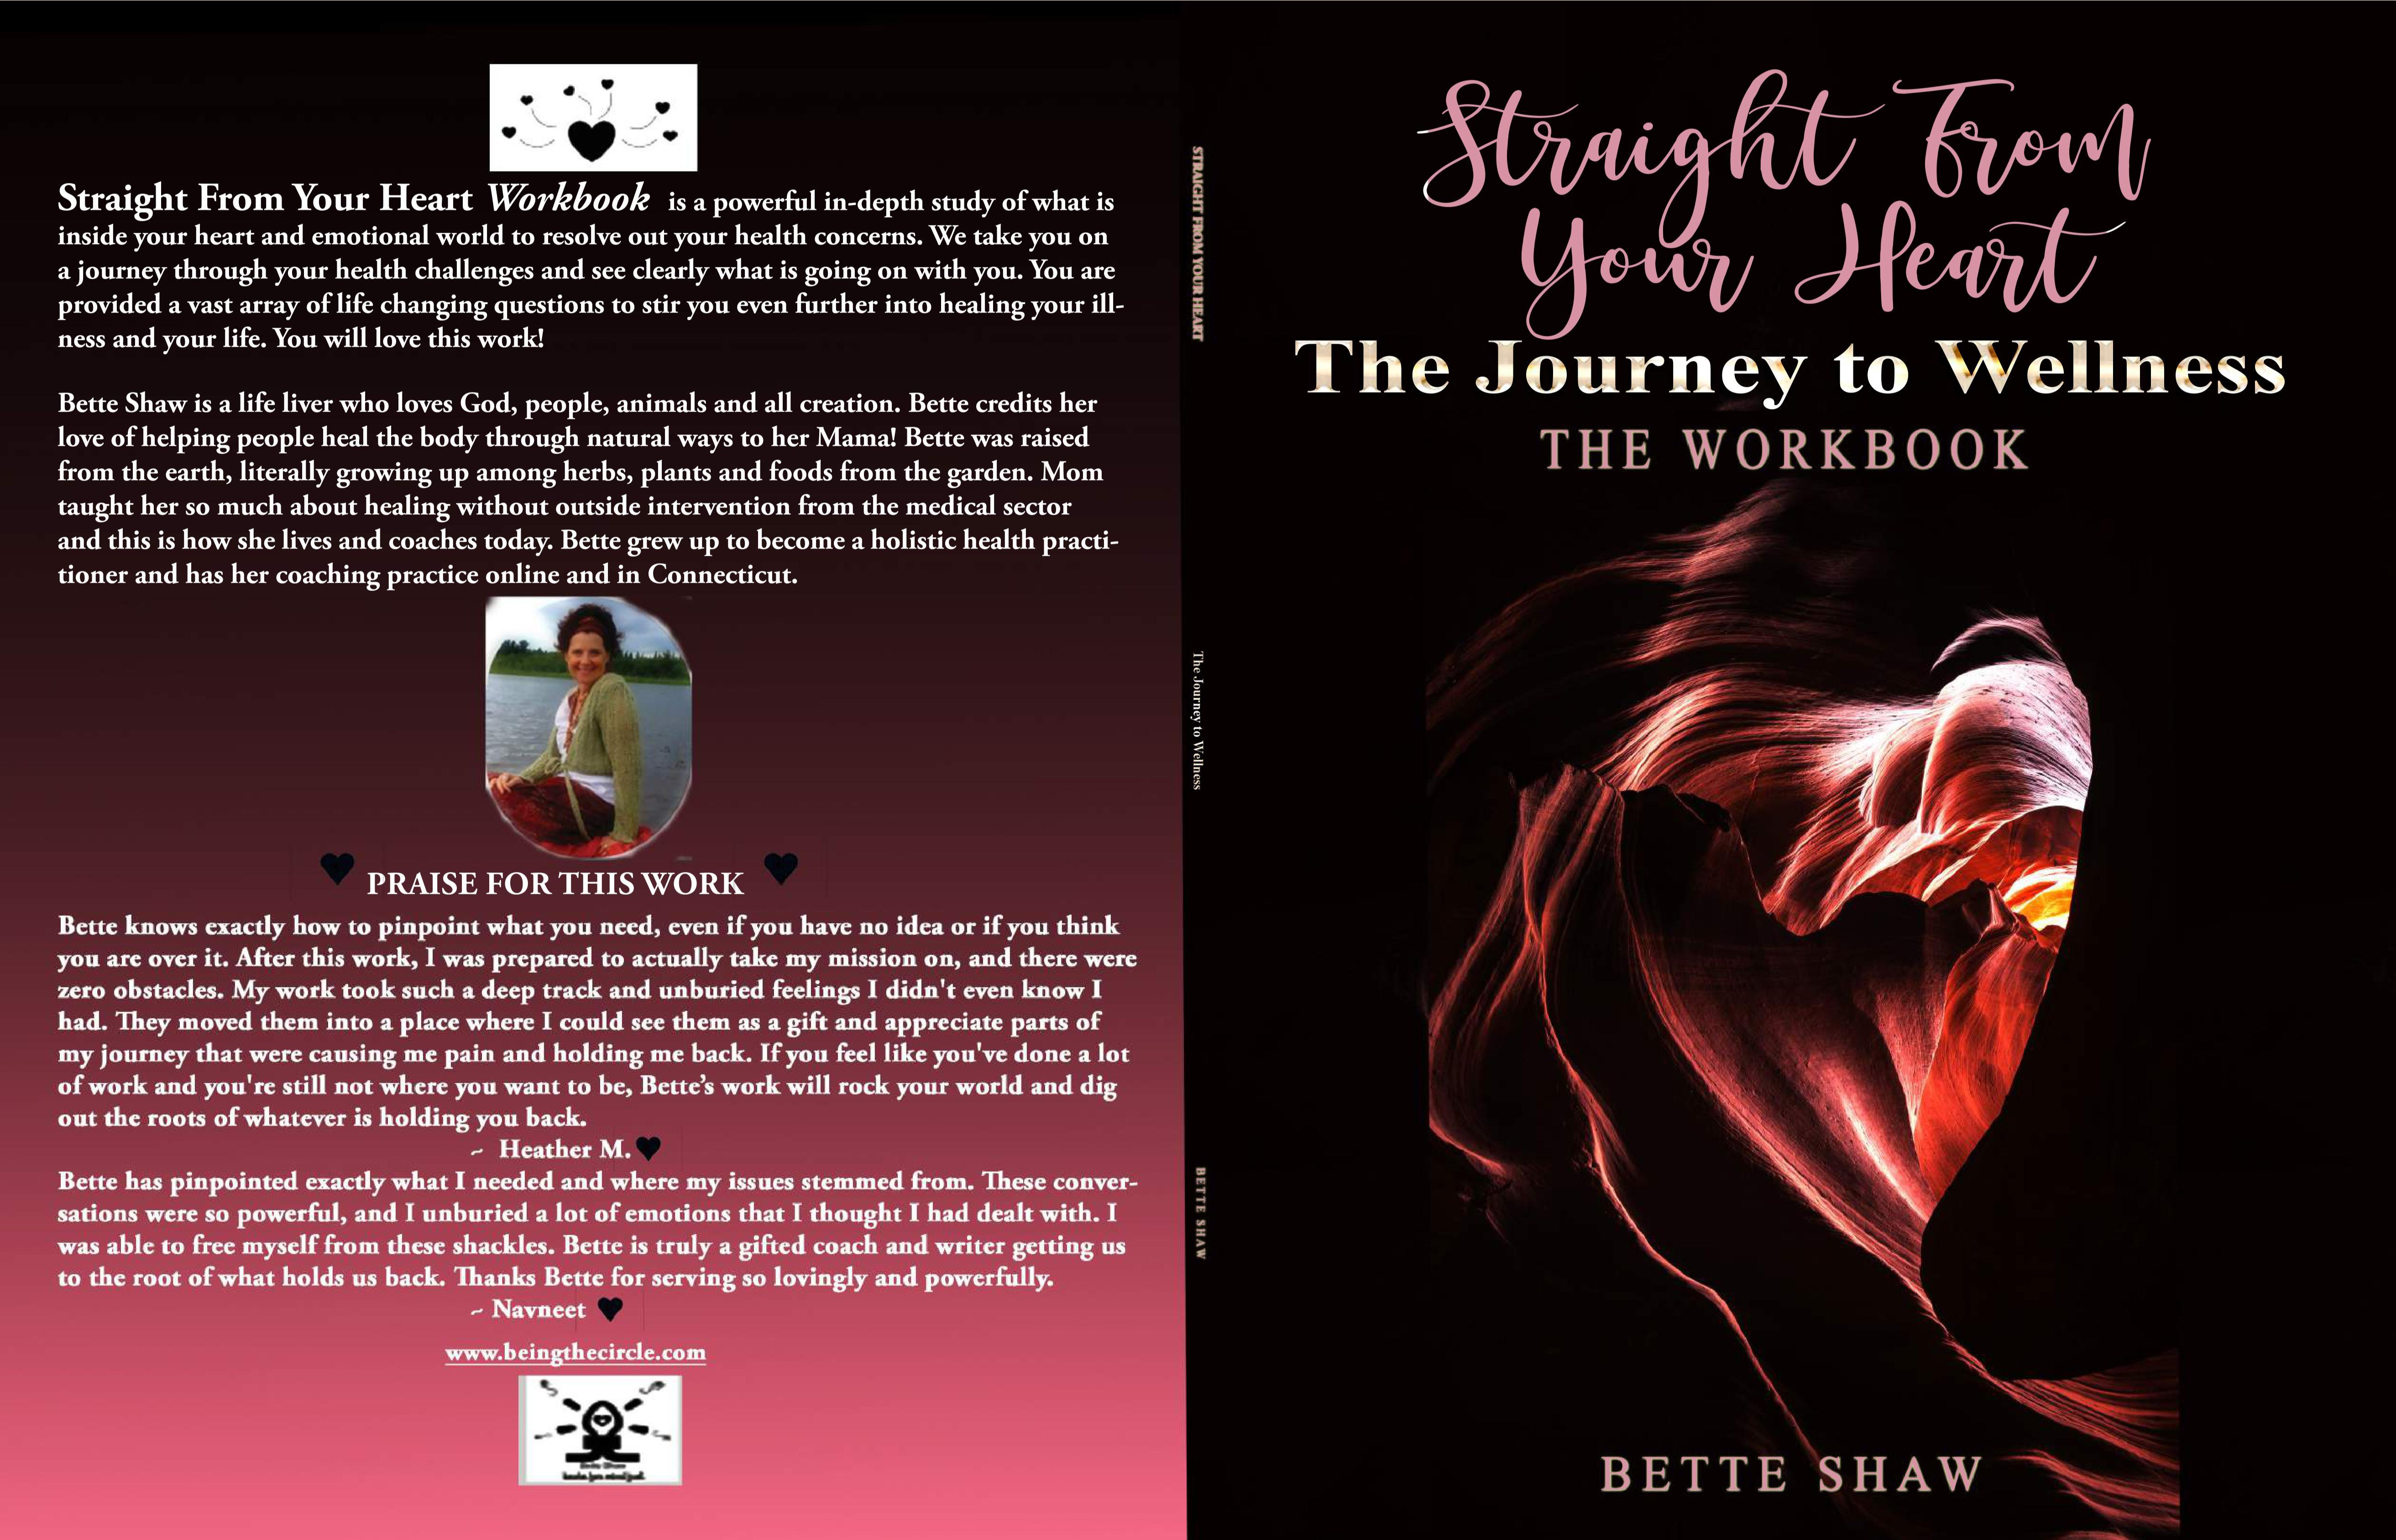 Straight From Your Heart-The Journey to Wellness-THE WORKBOOK cover image